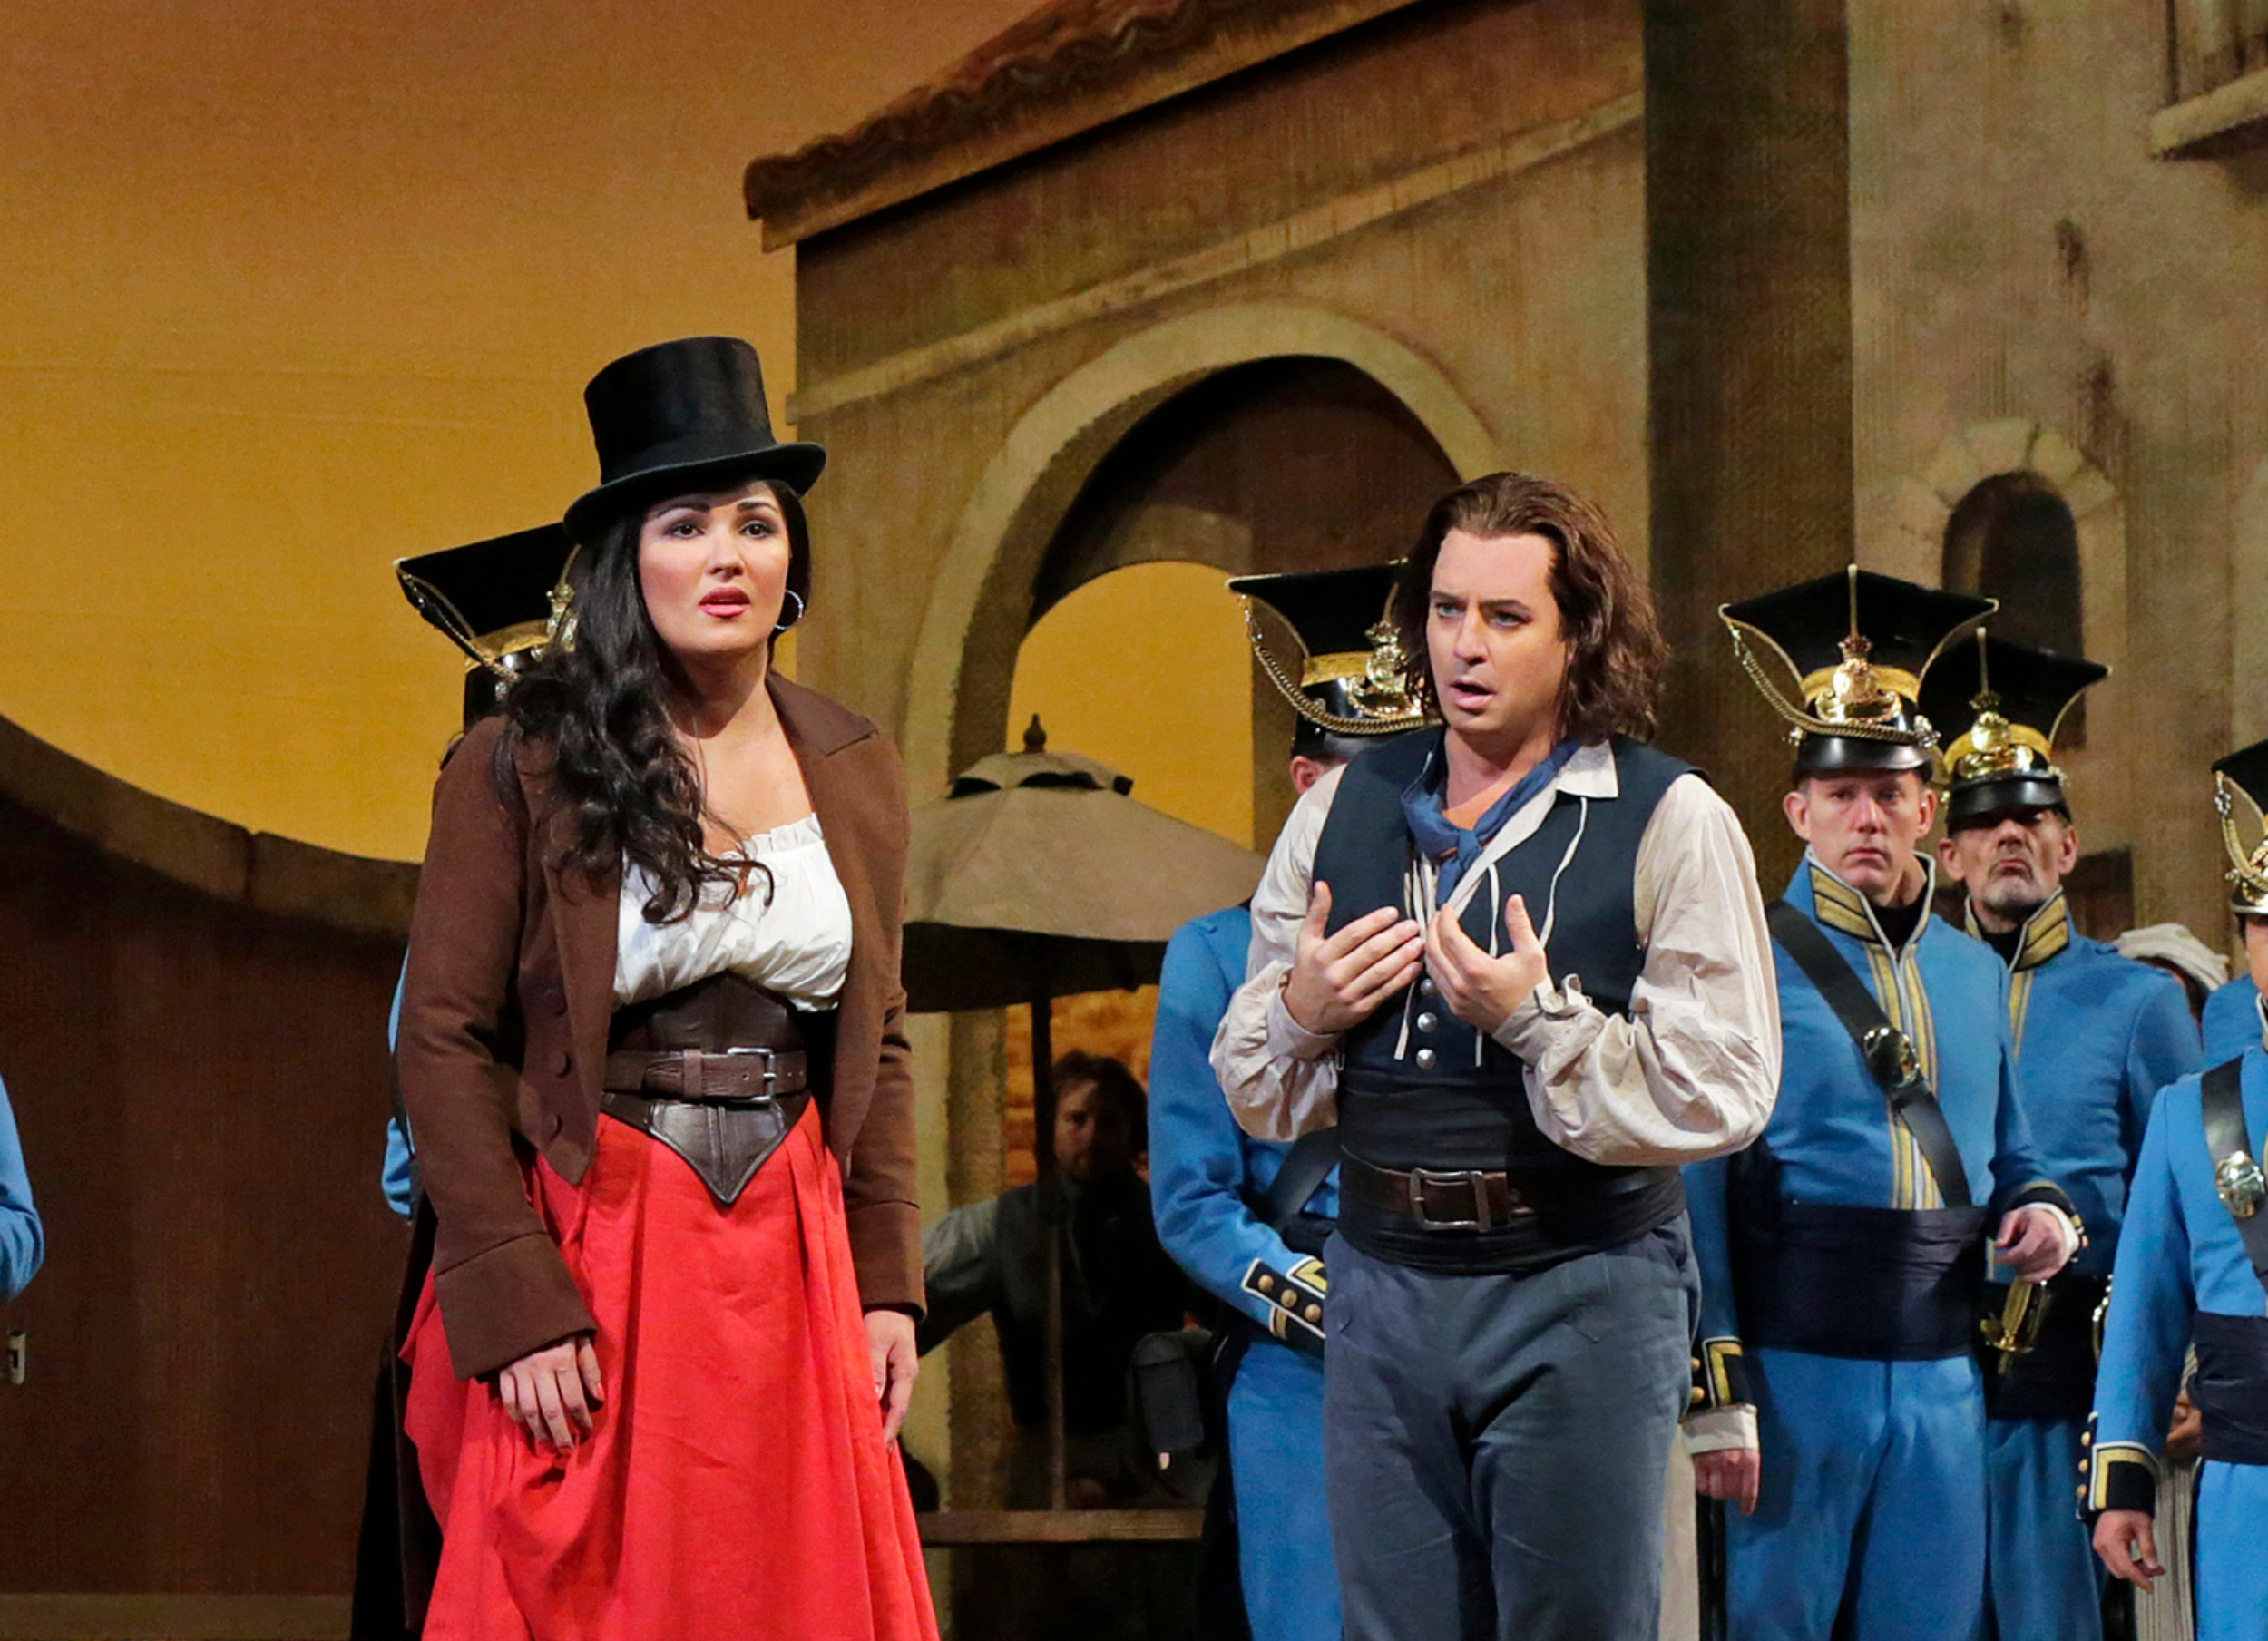 Anna Netrebko as Adina and Matthew Polenzani as Nemorino in  L'Elisir d'Amore .  Photo by Ken Howard; courtesy of Metropolitan Opera.